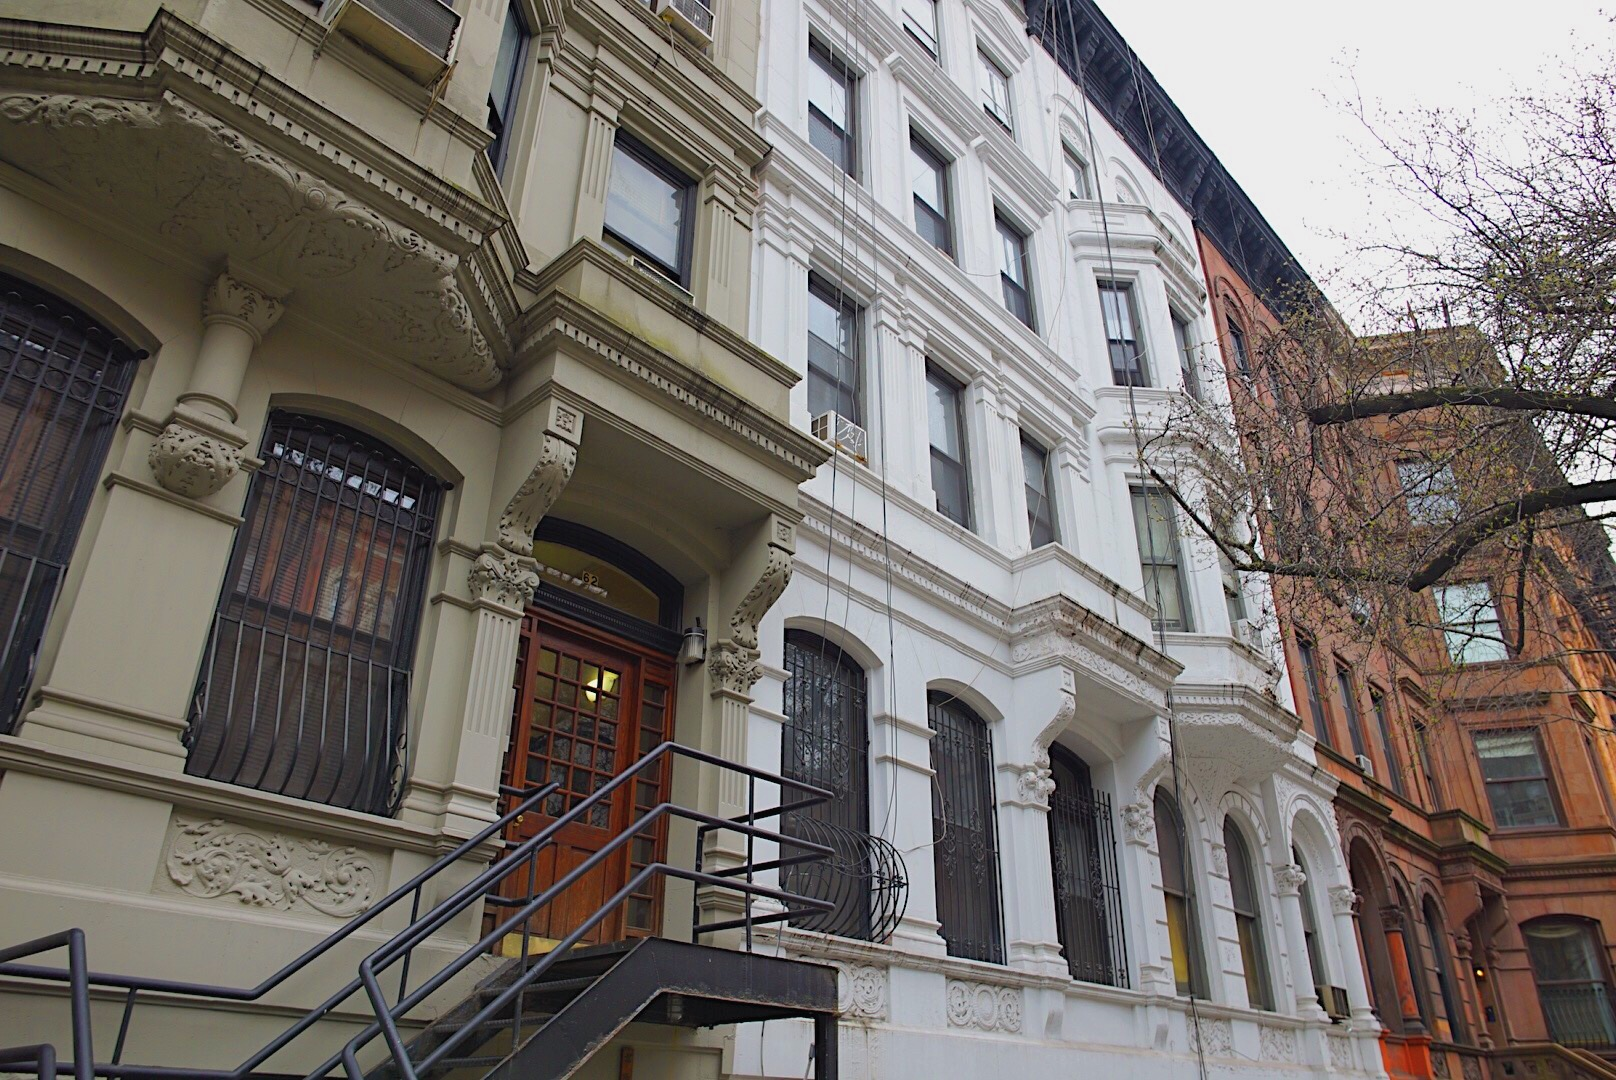 A row of brownstones on 69th Street in Manhattan.  April 8, 2019